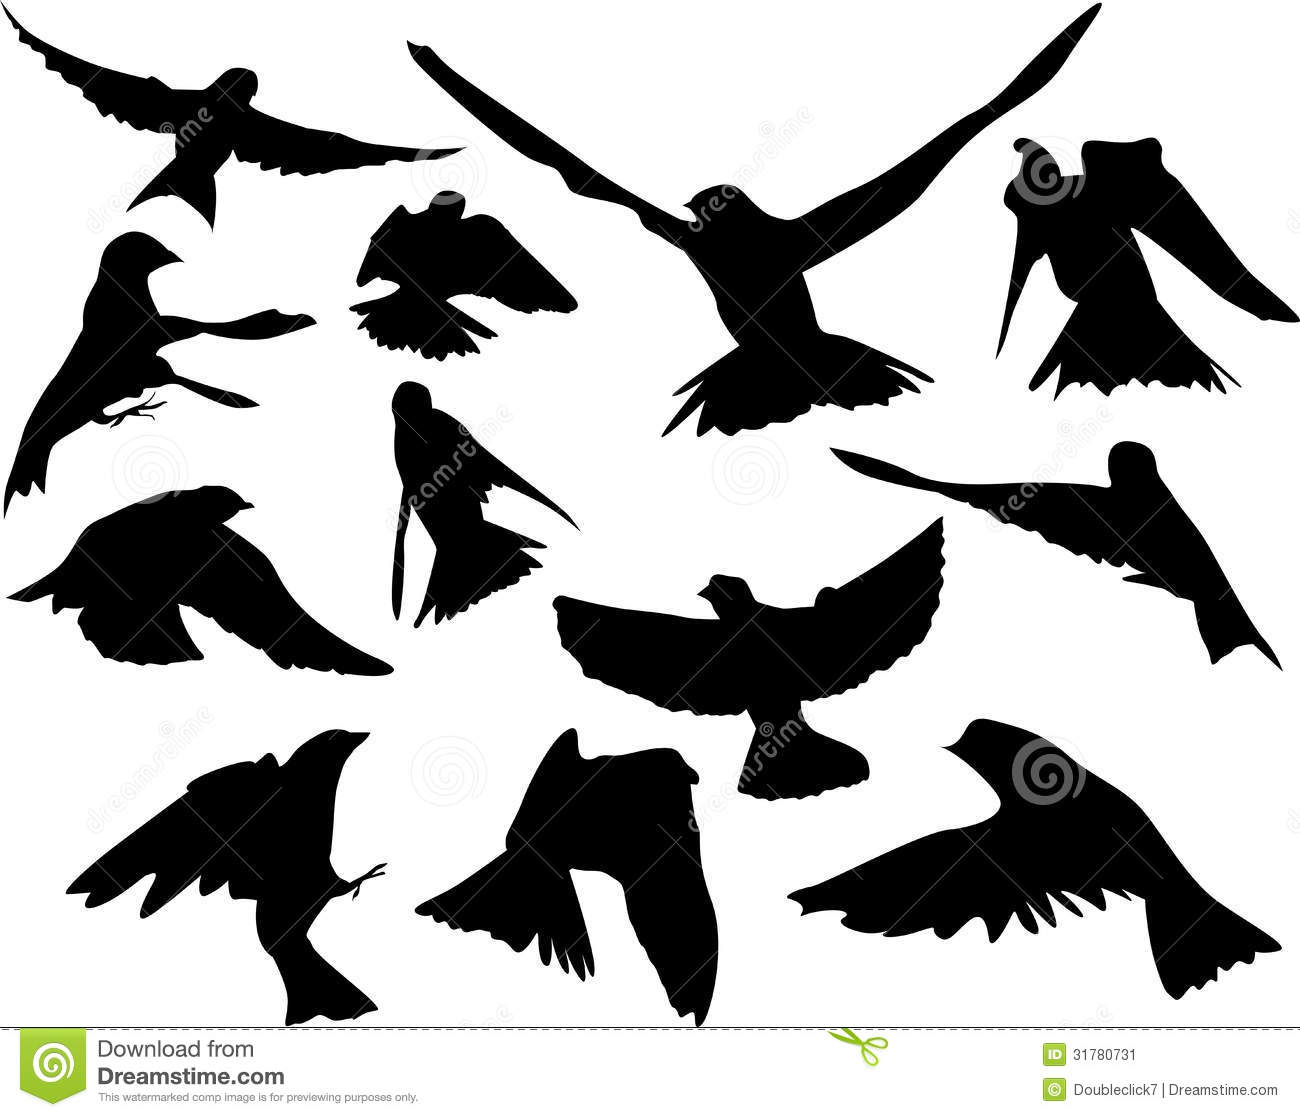 Birds in flight silhouette stock illustration ...